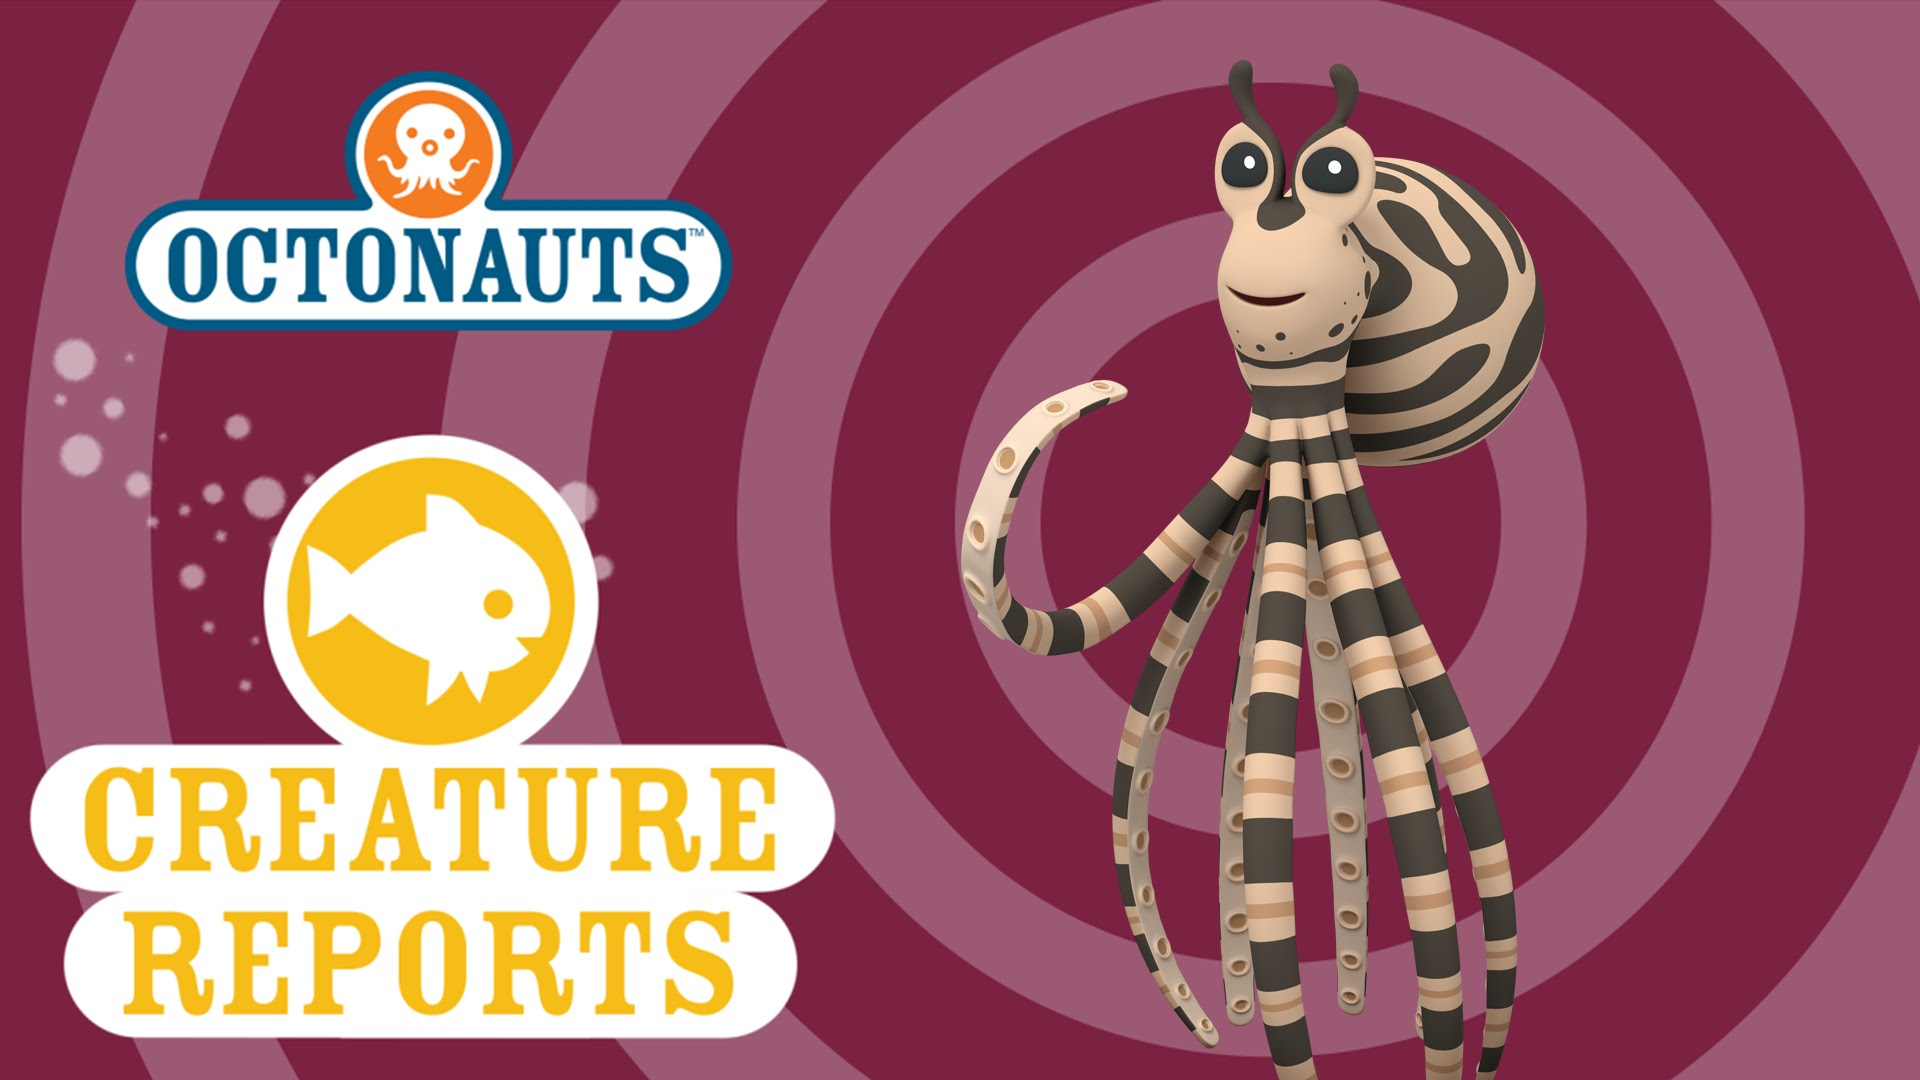 Octopus clipart mimic octopus. Octonauts creature reports youtube